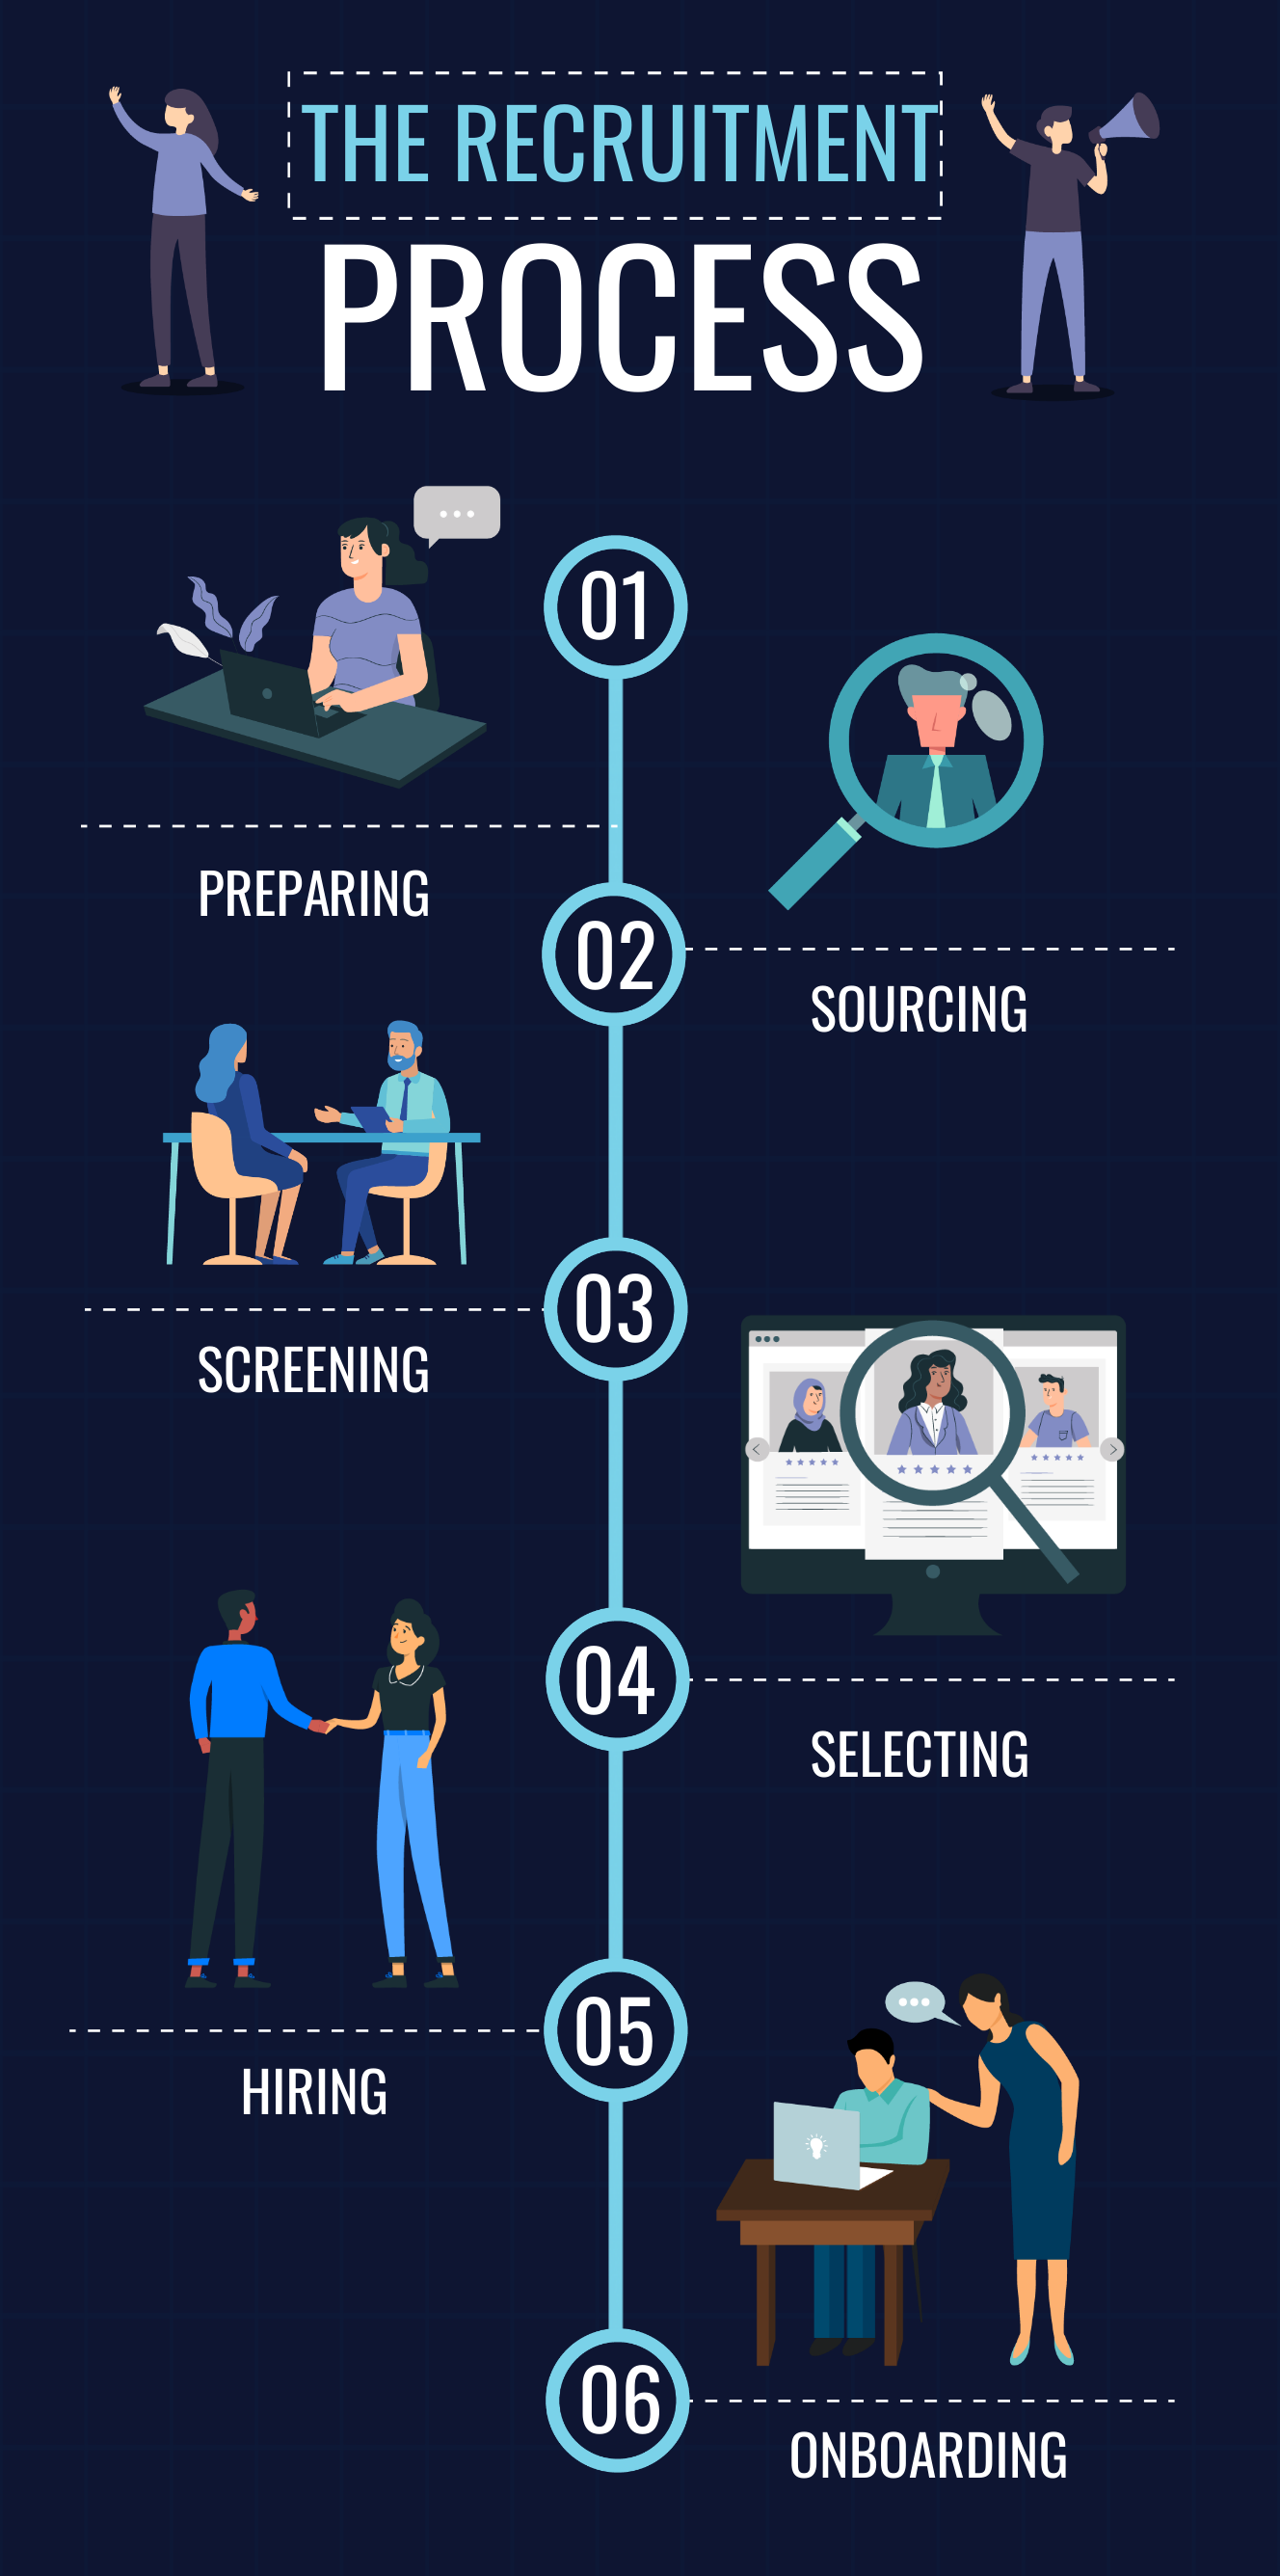 Recruitment process infographic